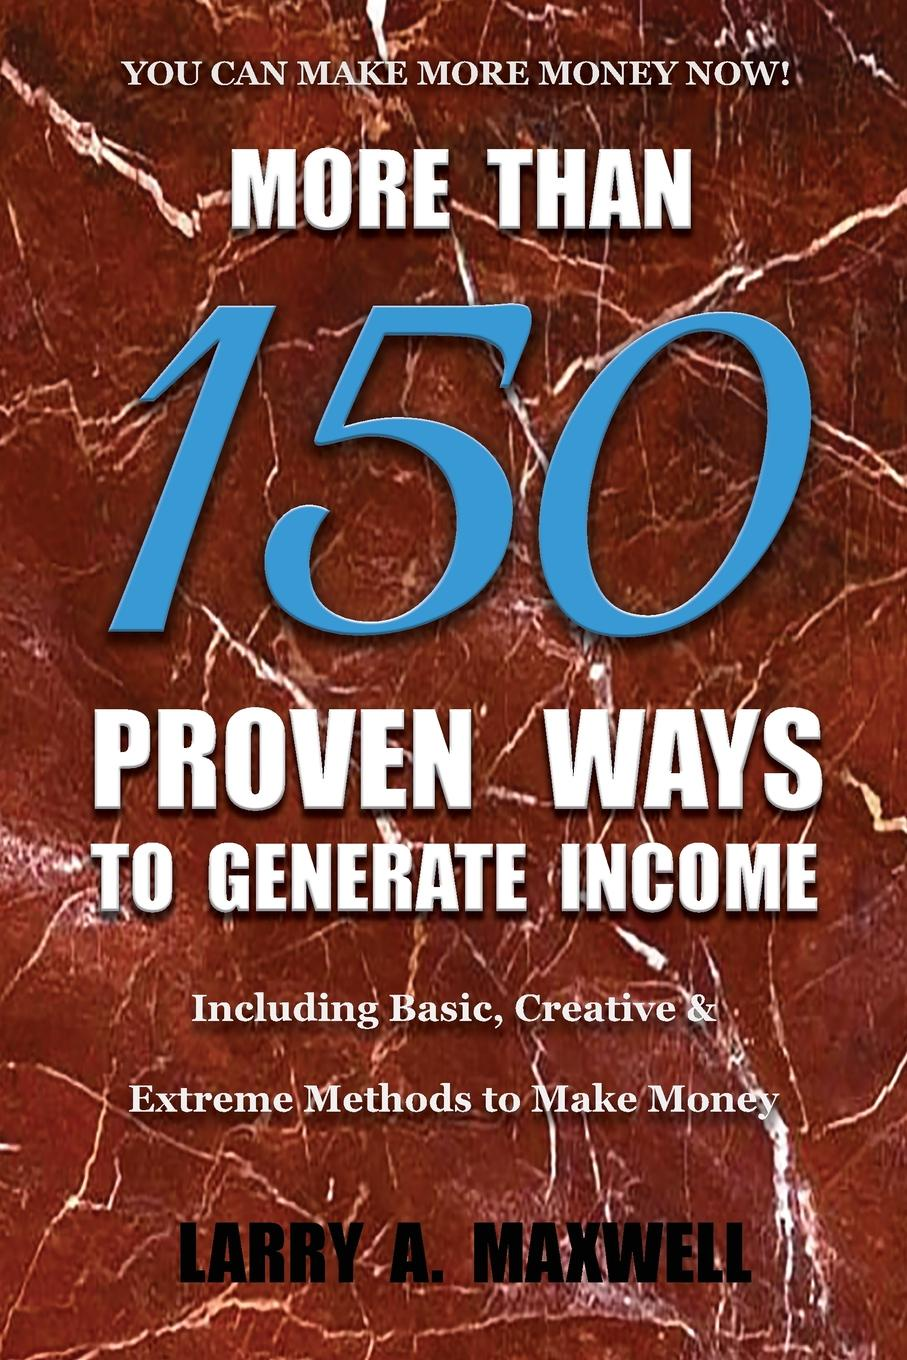 Larry A Maxwell More Than 150 Proven Ways to Generate Income. Including Basic, Creative and Extreme Methods to Make Money robert g allen multiple streams of income how to generate a lifetime of unlimited wealth